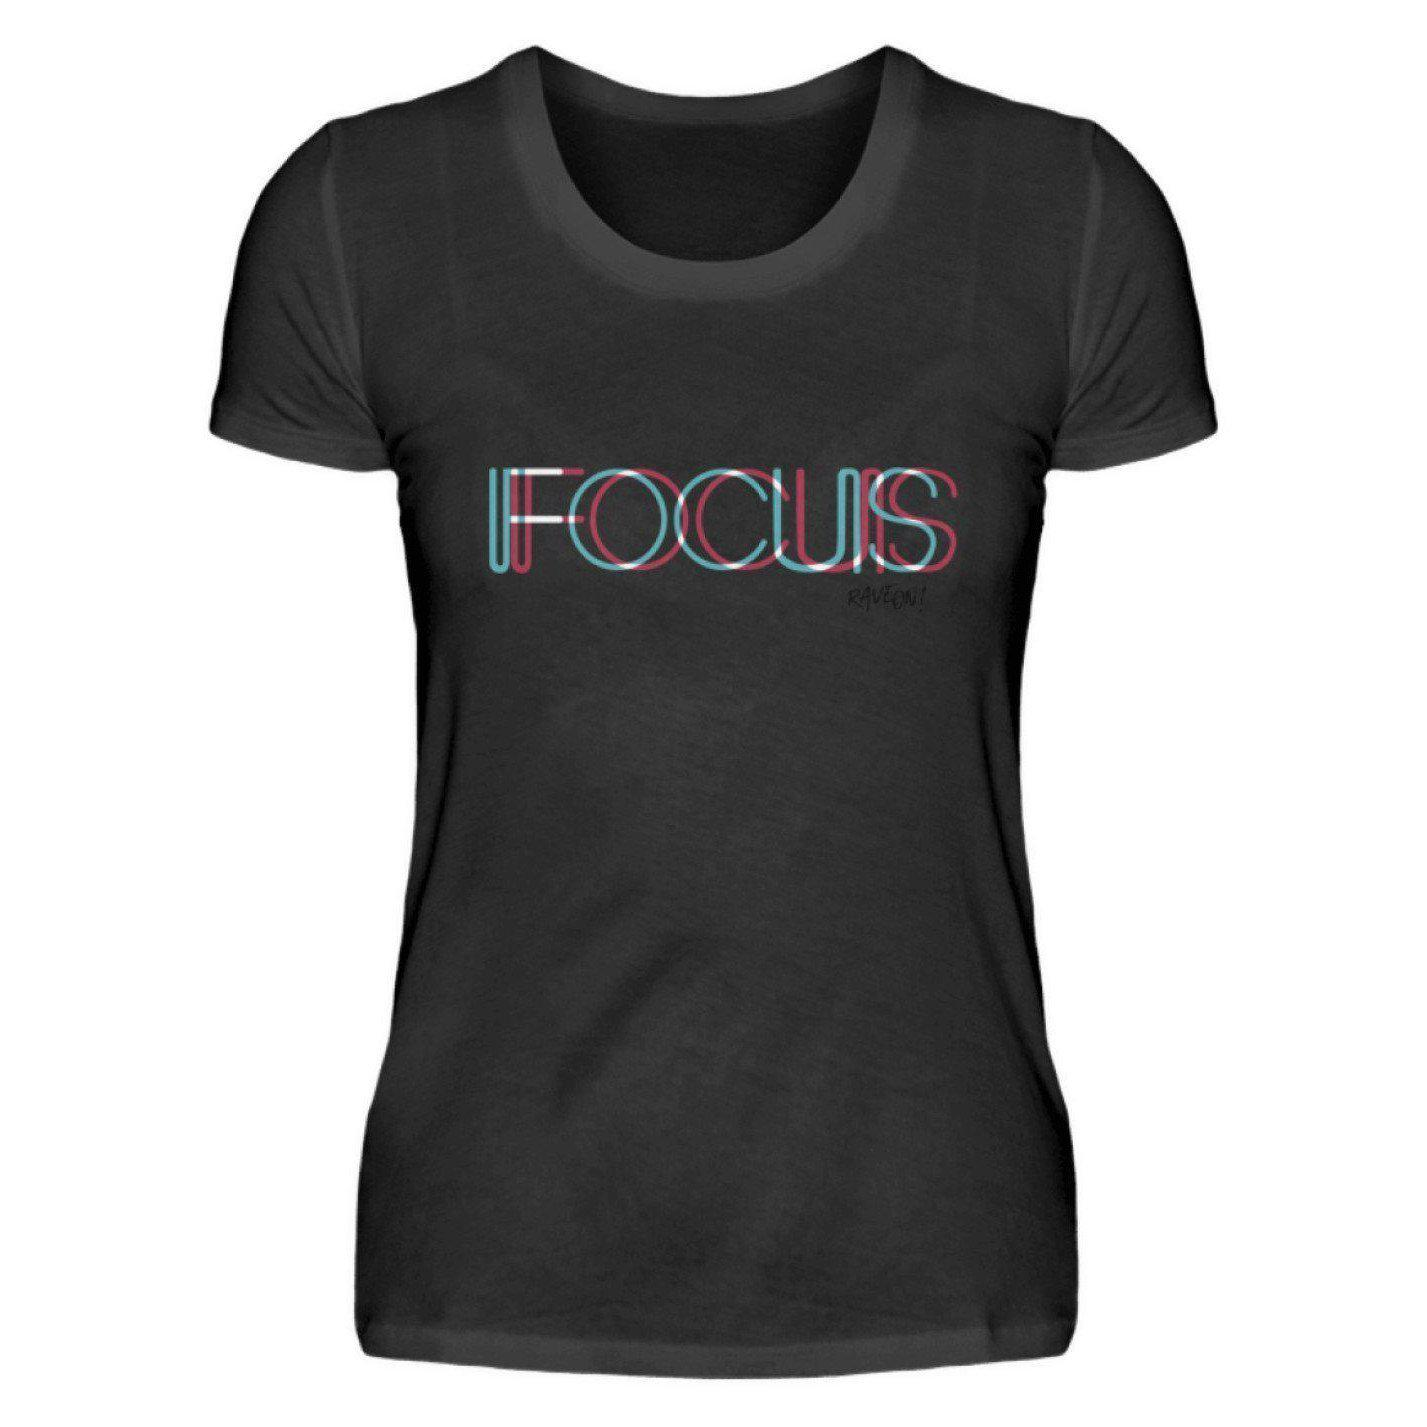 FOCUS trippy -Rave On!® - Damenshirt Damen Basic T-Shirt Schwarz / S - Rave On!® der Club & Techno Szene Shop für Coole Junge Mode Streetwear Style & Fashion Outfits + Sexy Festival 420 Stuff